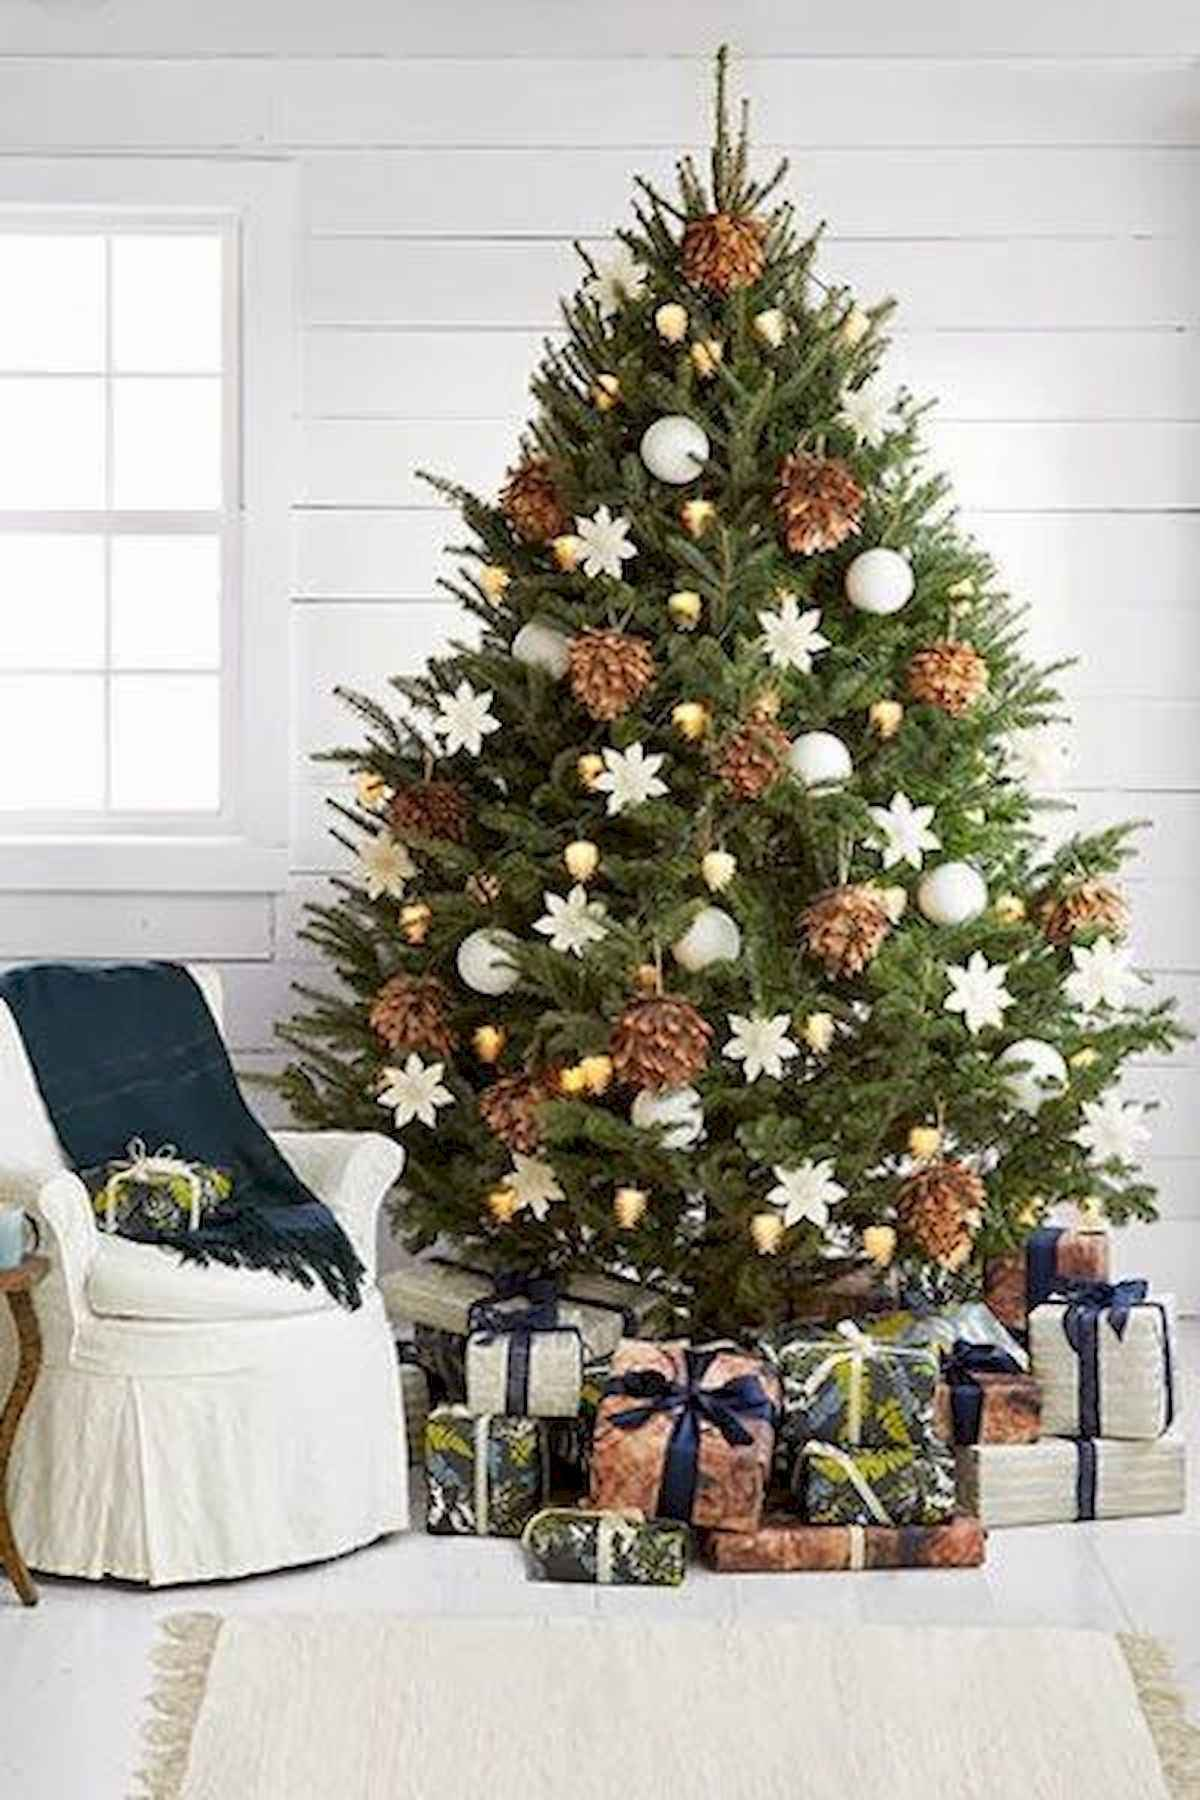 60 awesome christmas tree decorations ideas (28)